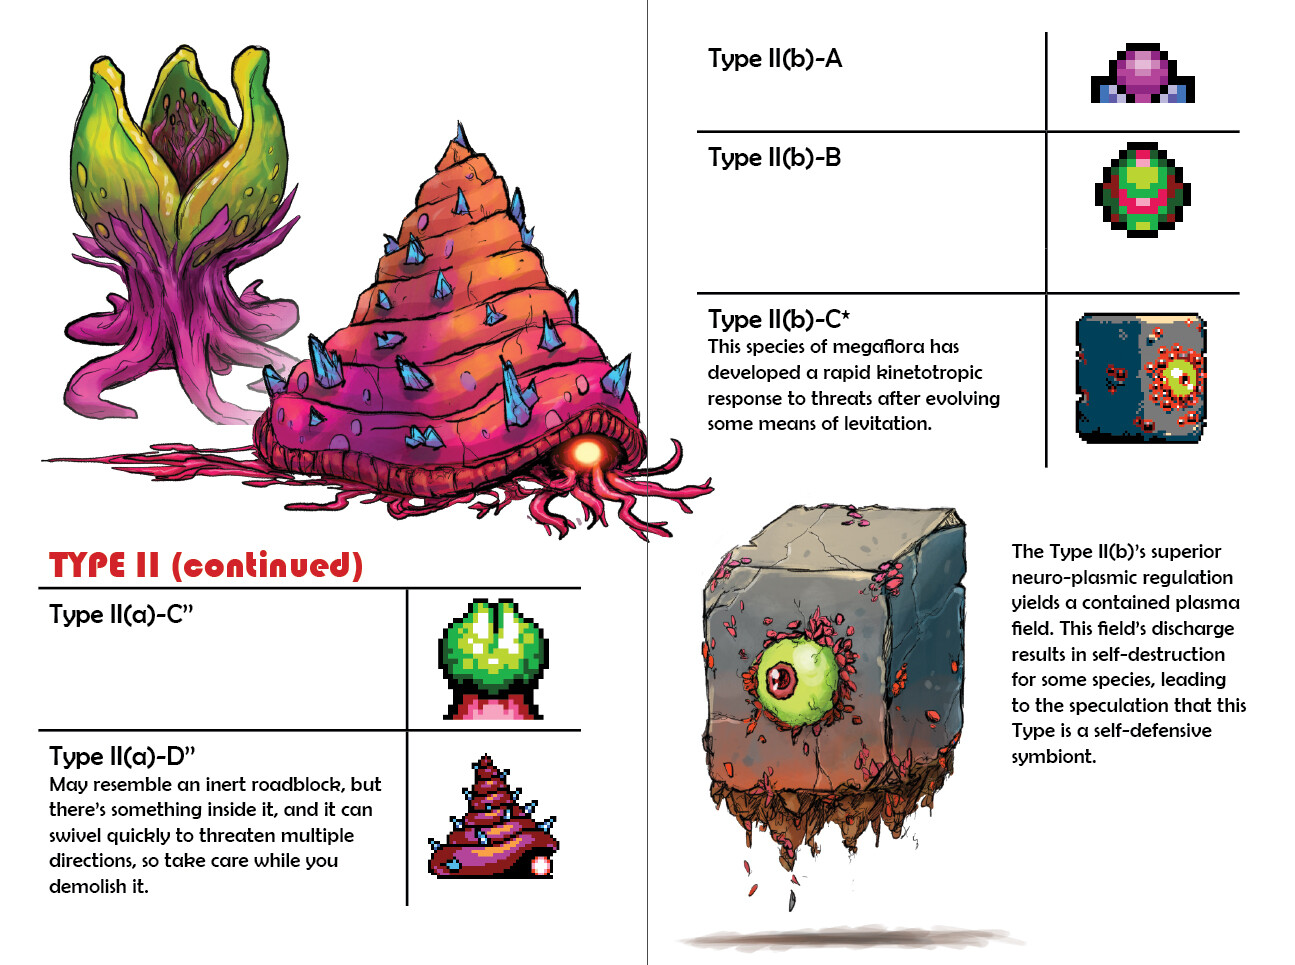 Example spread from the manual showing the original sprites next to their illustrations.